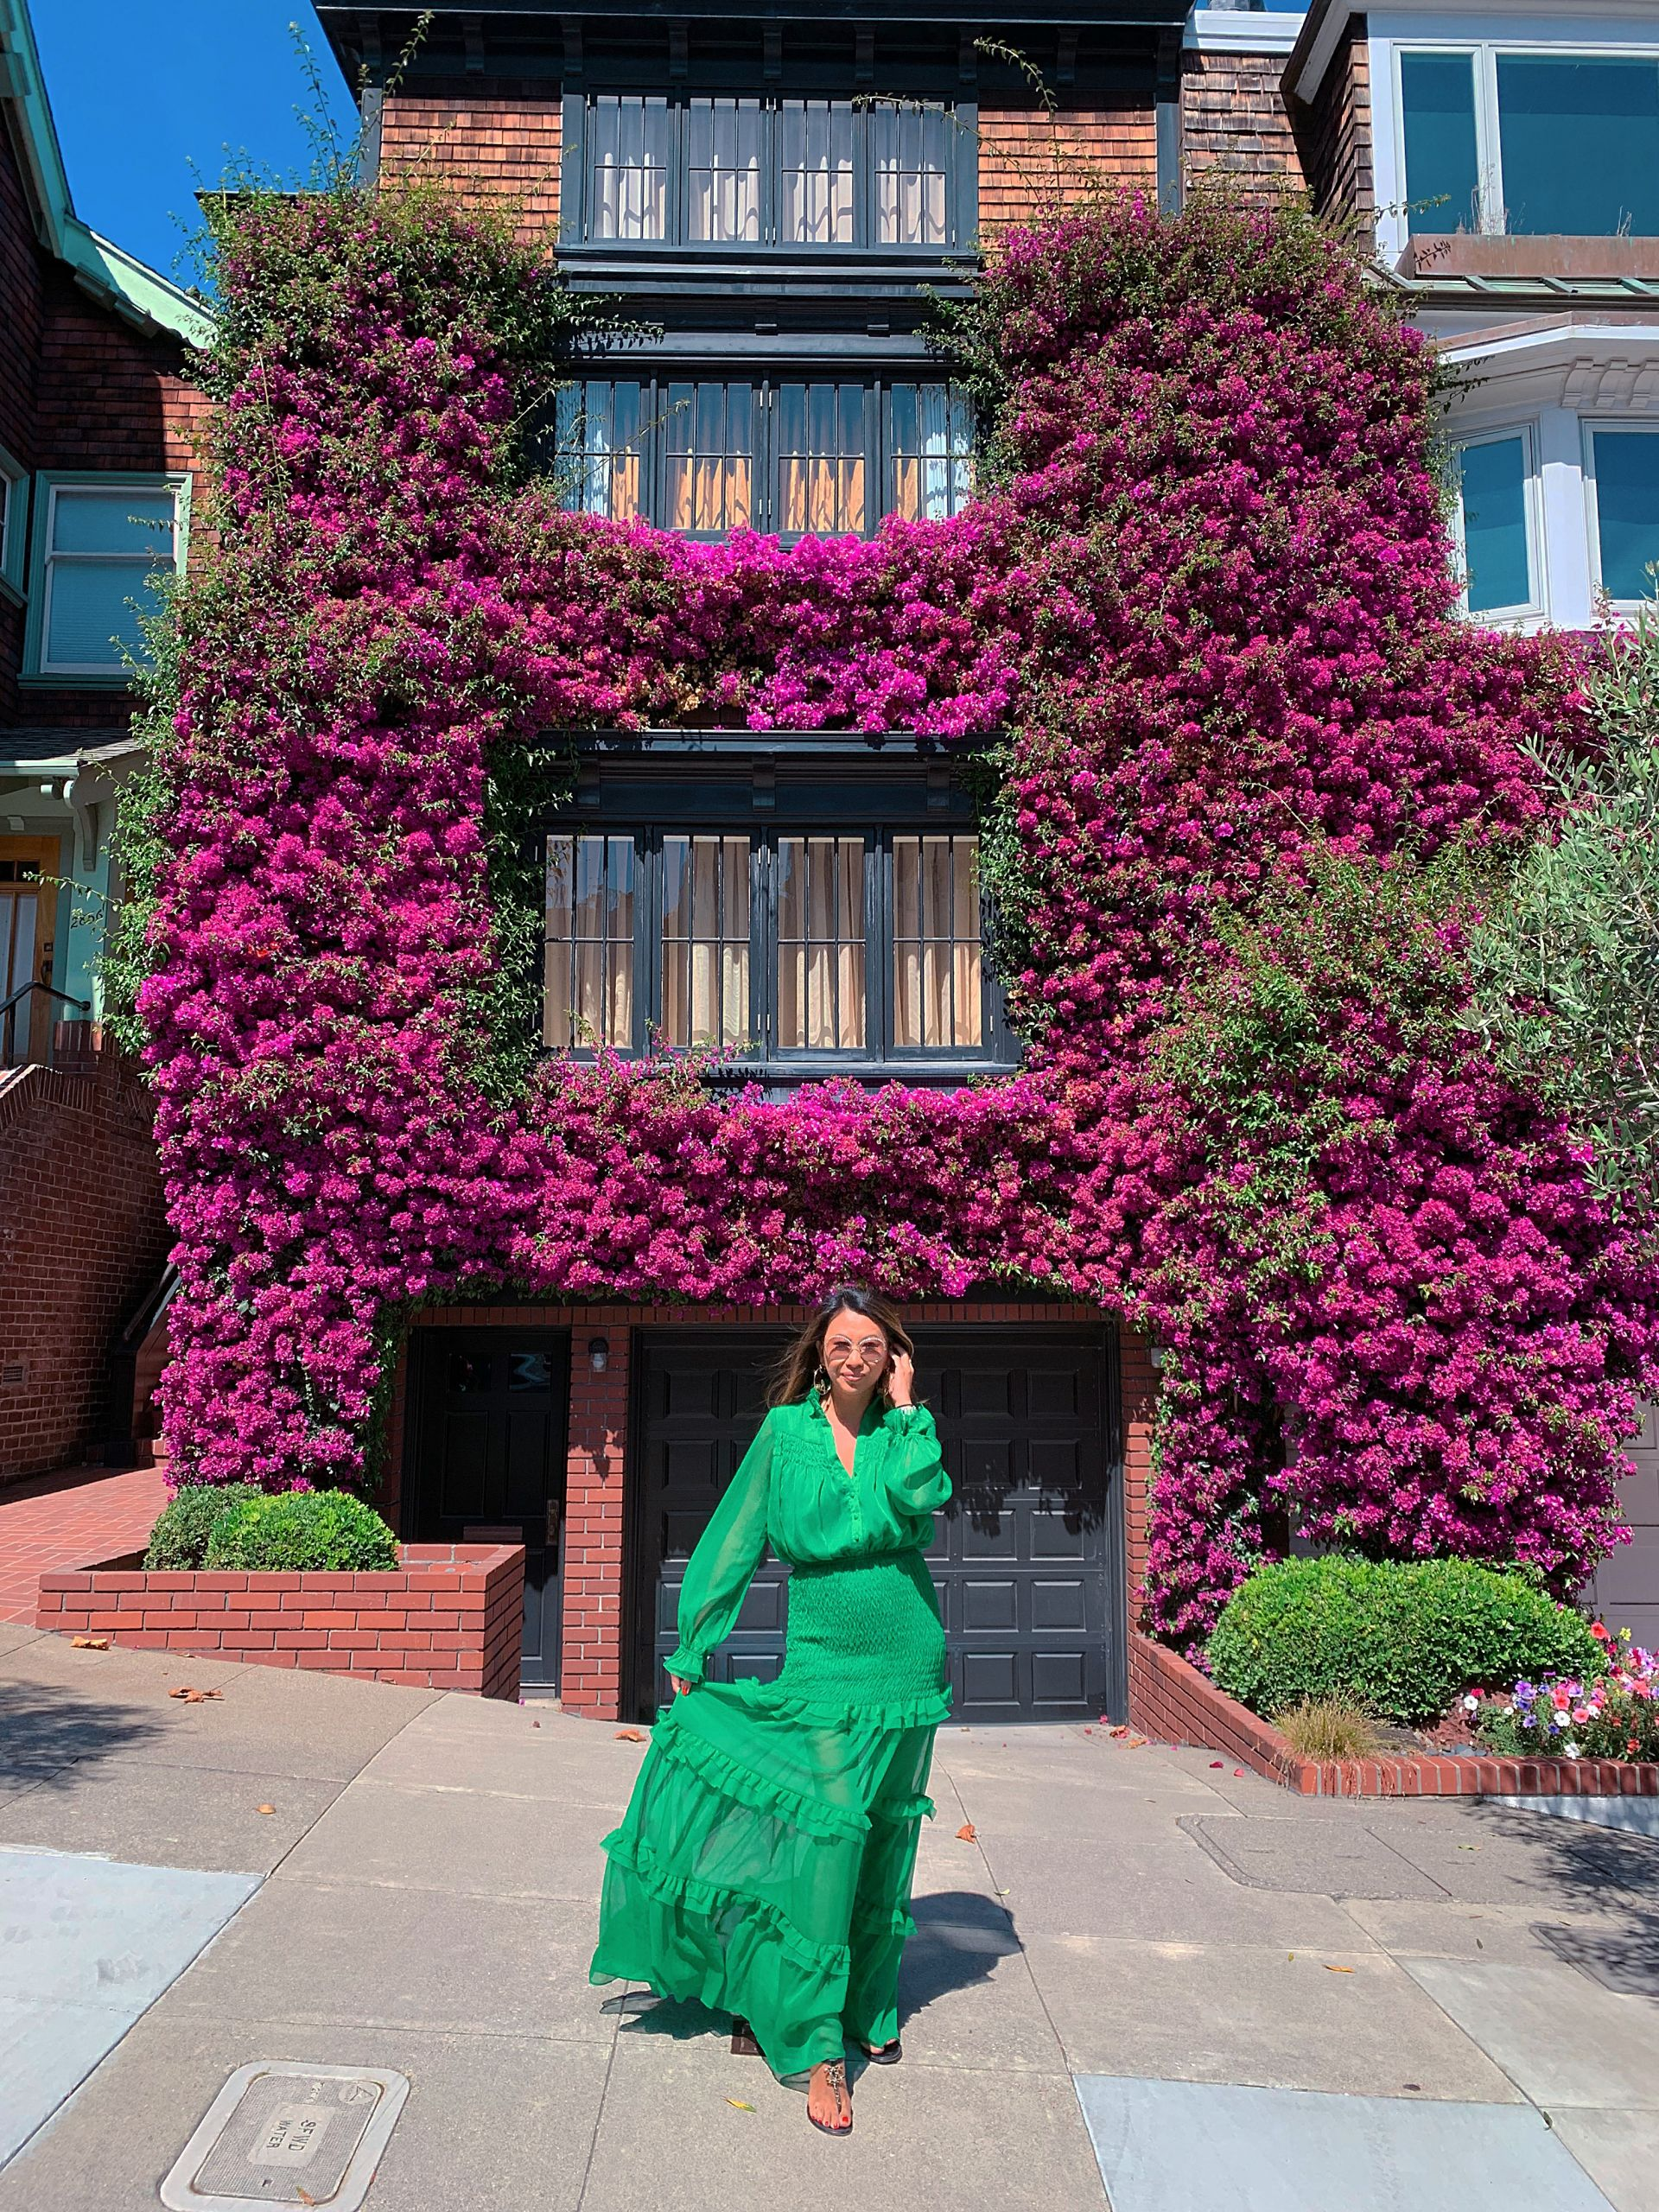 Best bougainvillea house in San Francisco, Best instagram spot San Francisco, Best spot for photos SF, Bougainvillea house, Baker St